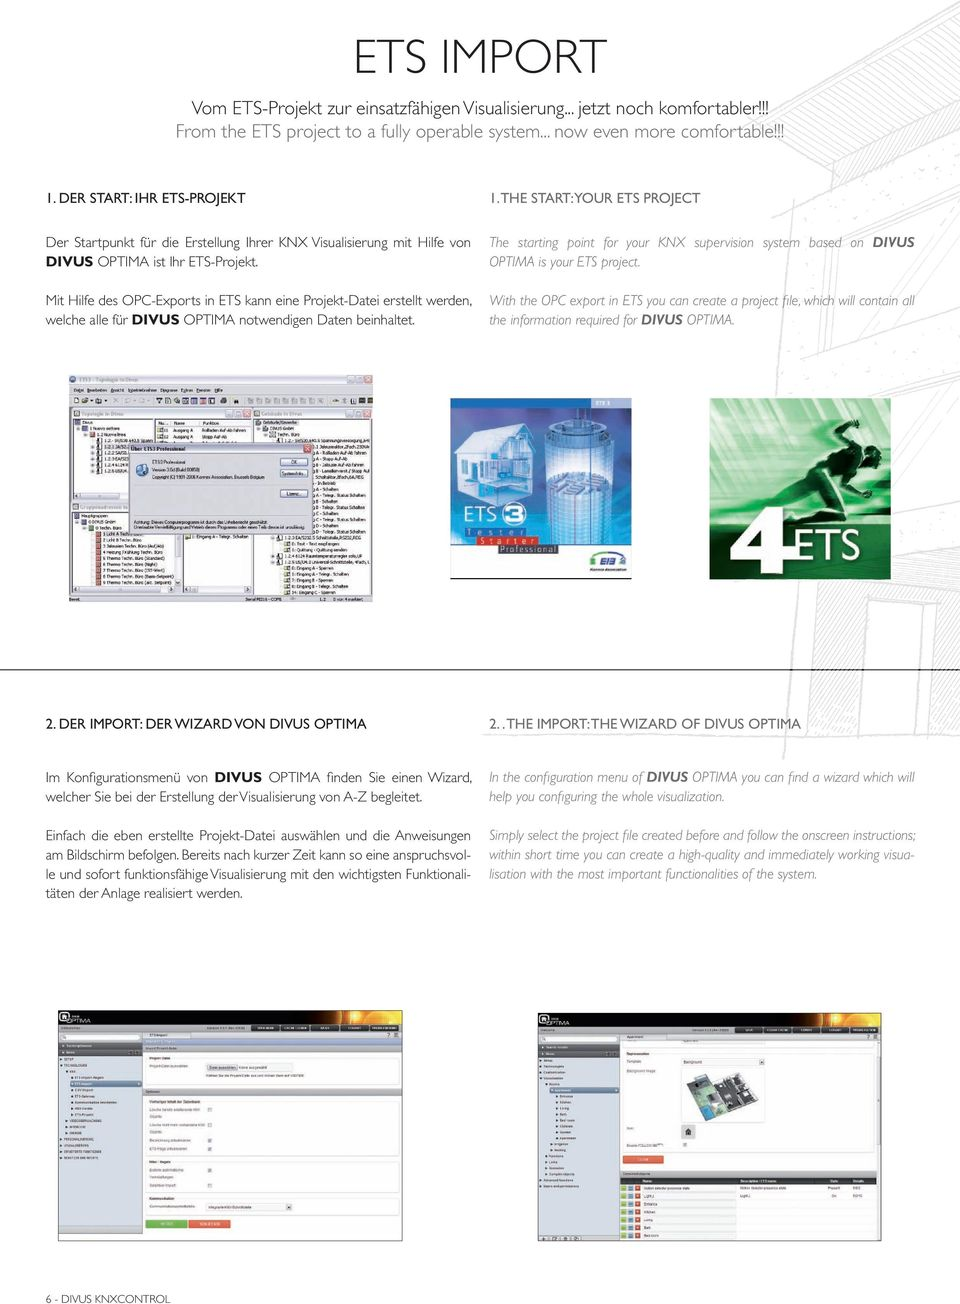 The starting point for your KNX supervision system based on DIVUS OPTIMA is your ETS project.